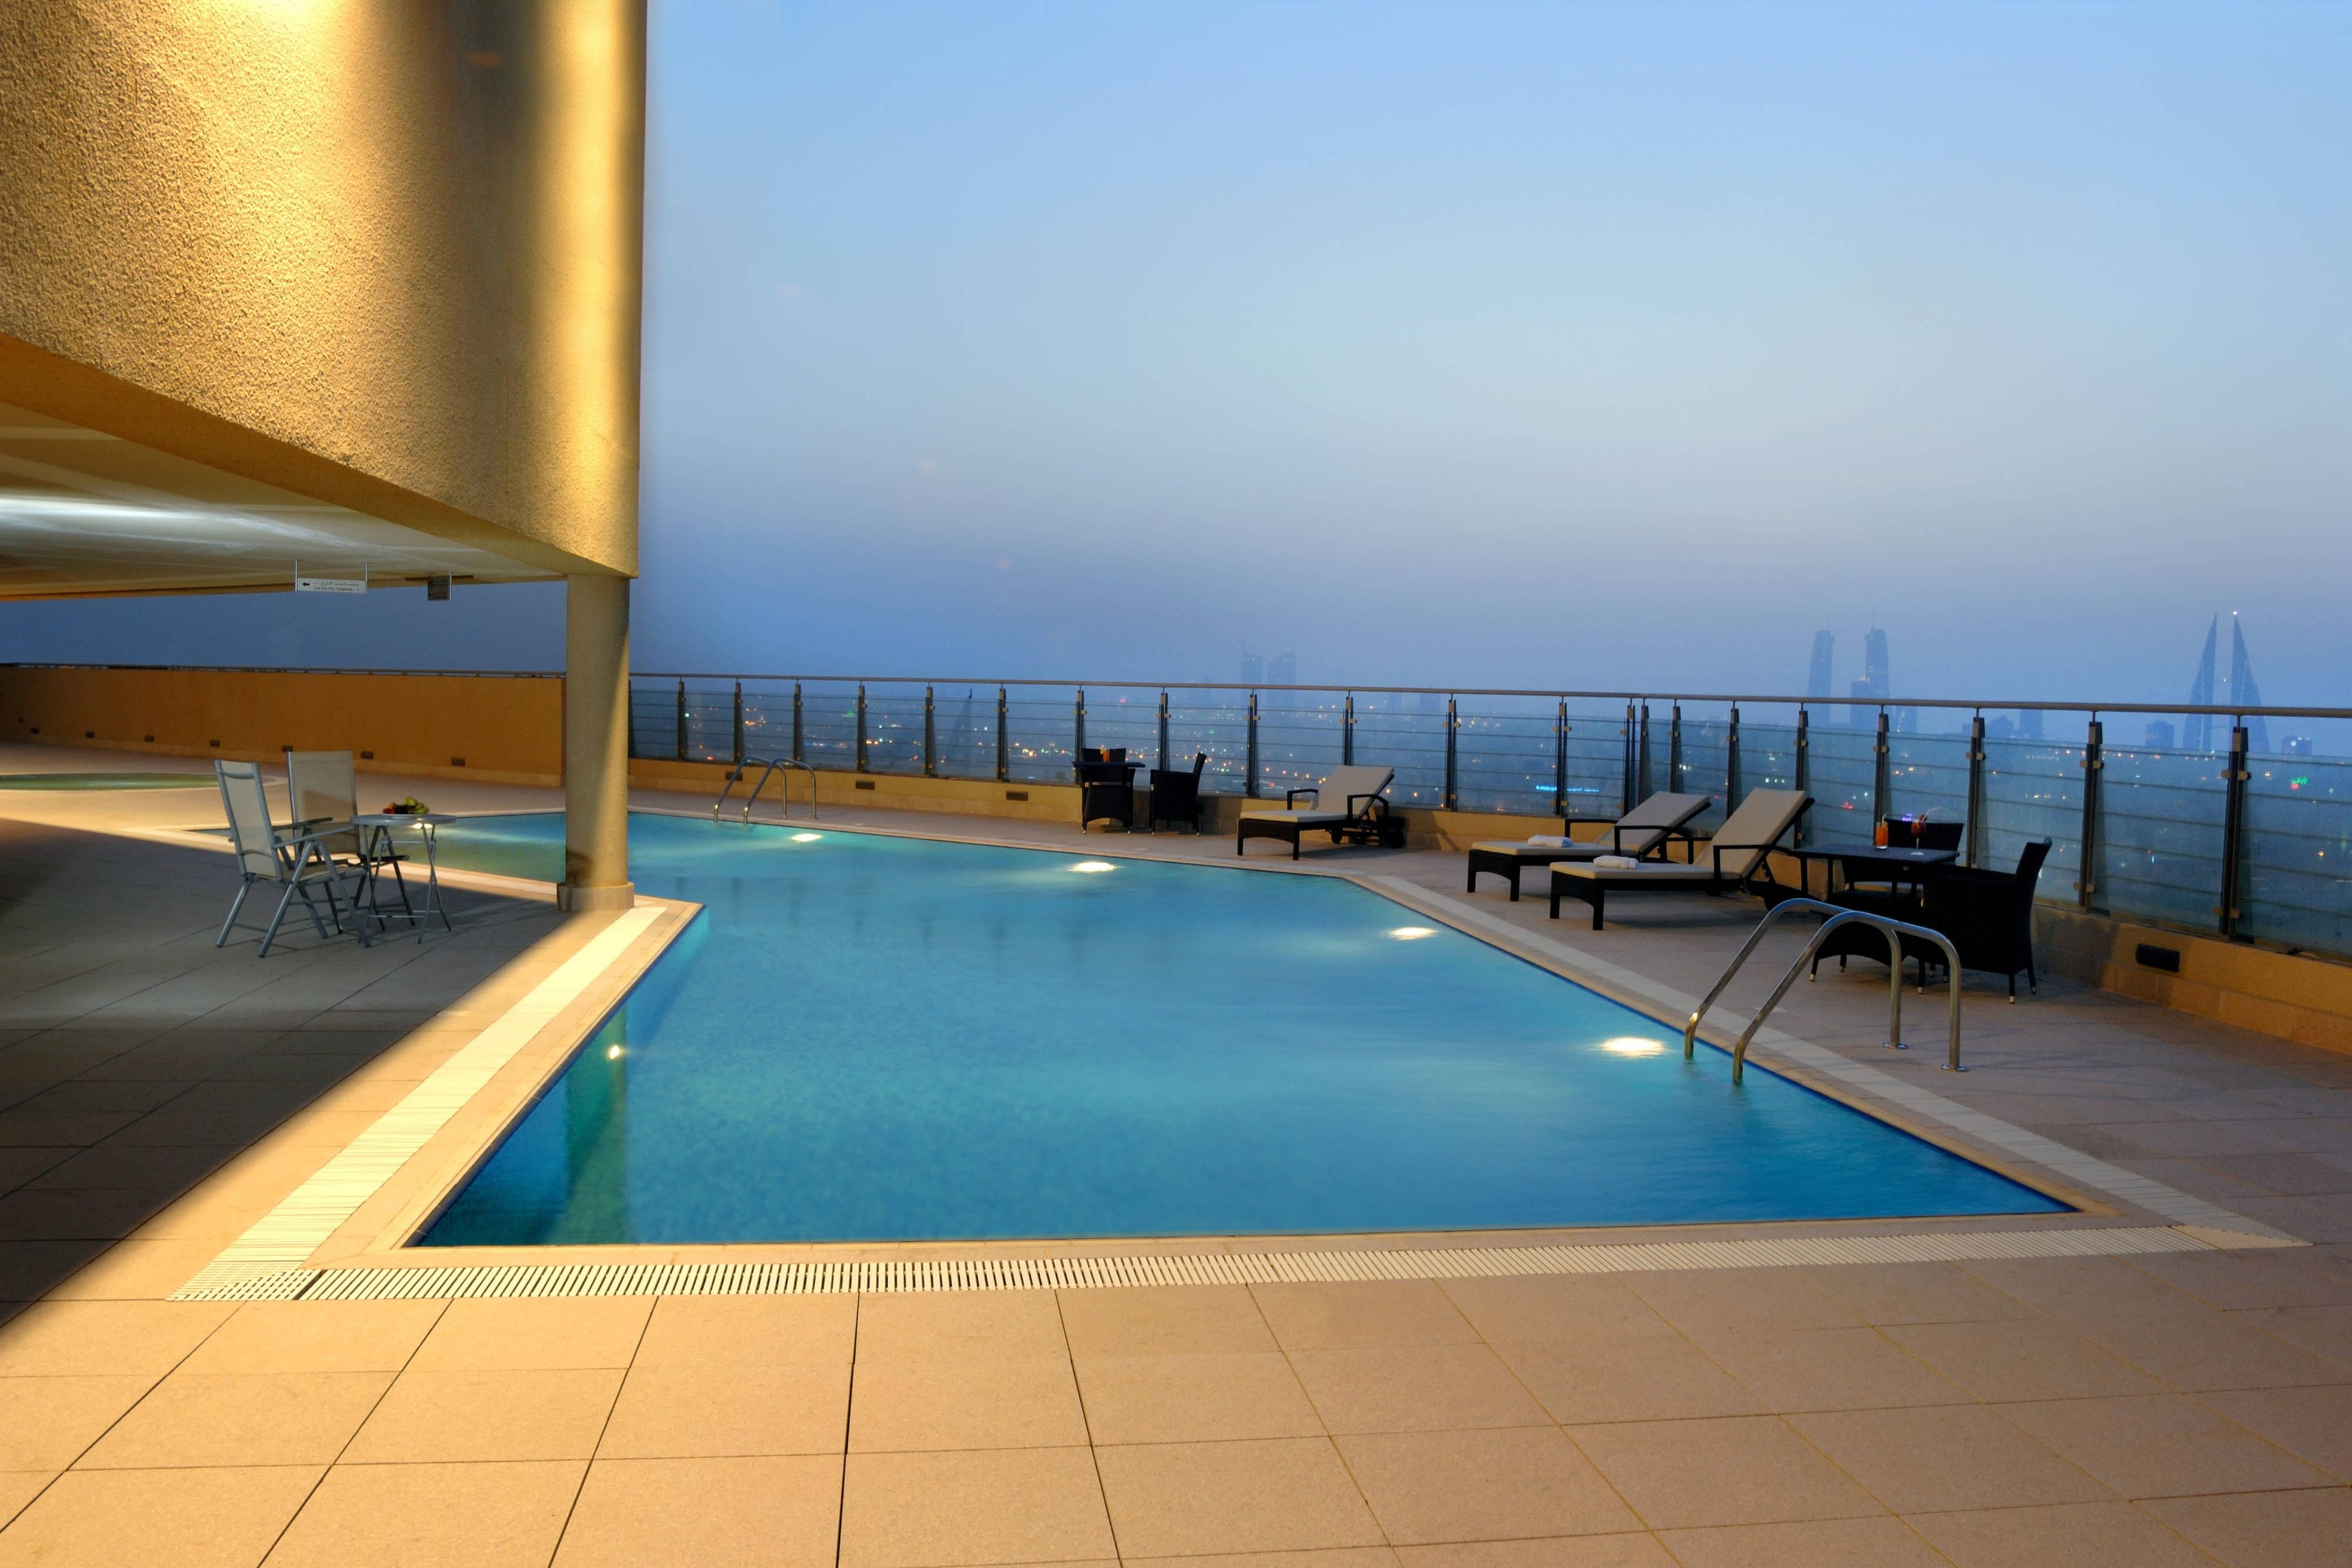 Bahrain Hotel Outdoor Pool